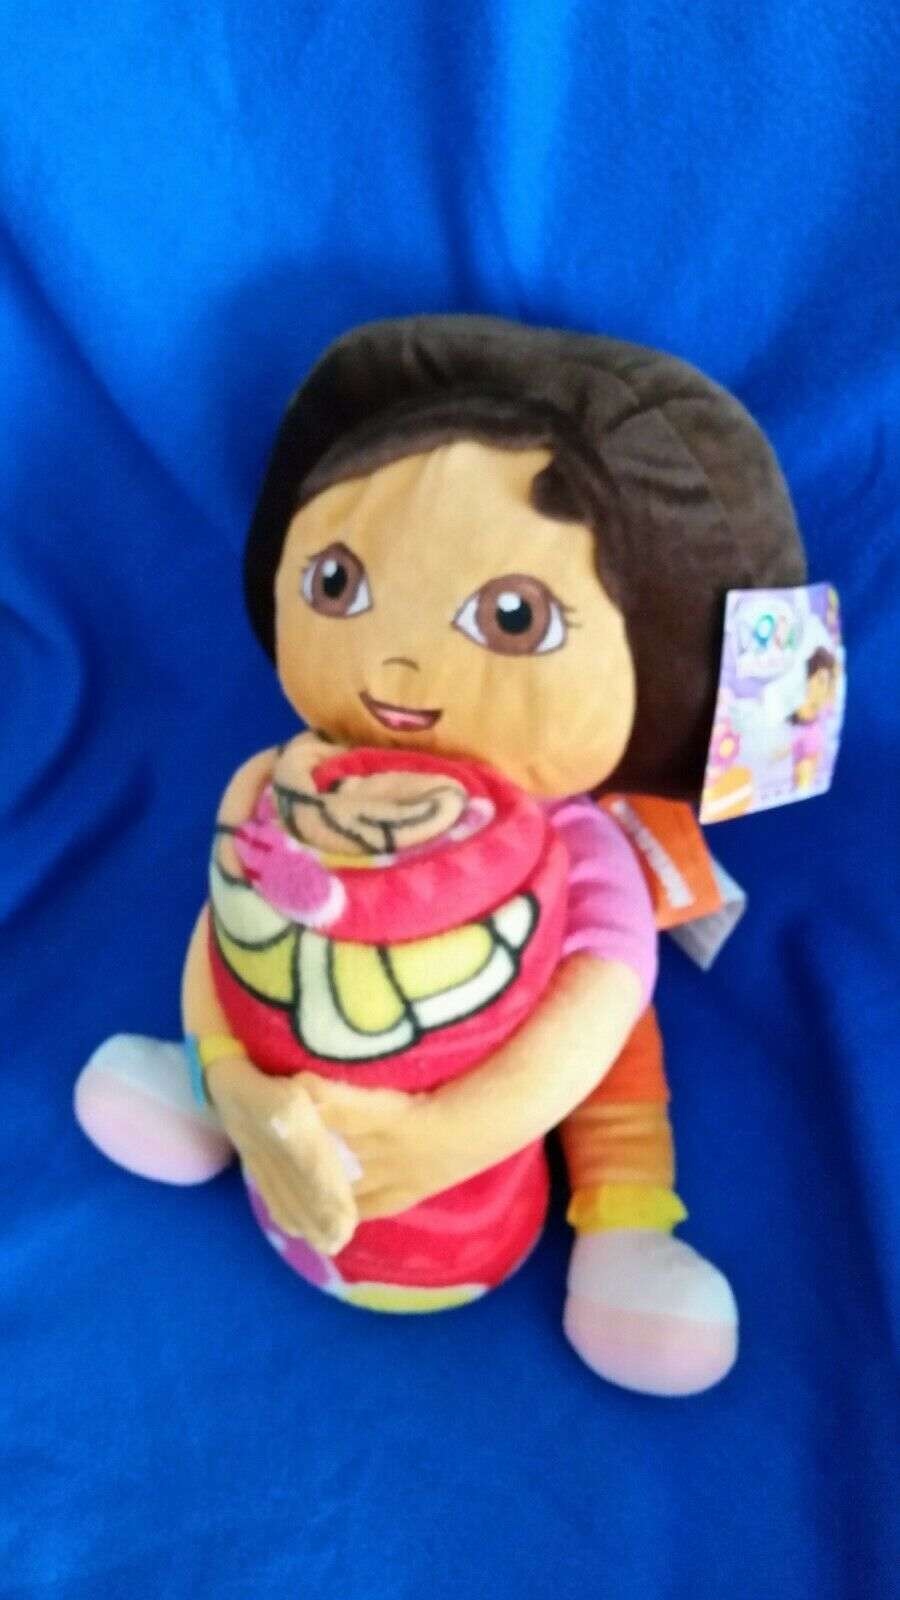 Dora The Explorer Blanket And Plush Toy Combination New